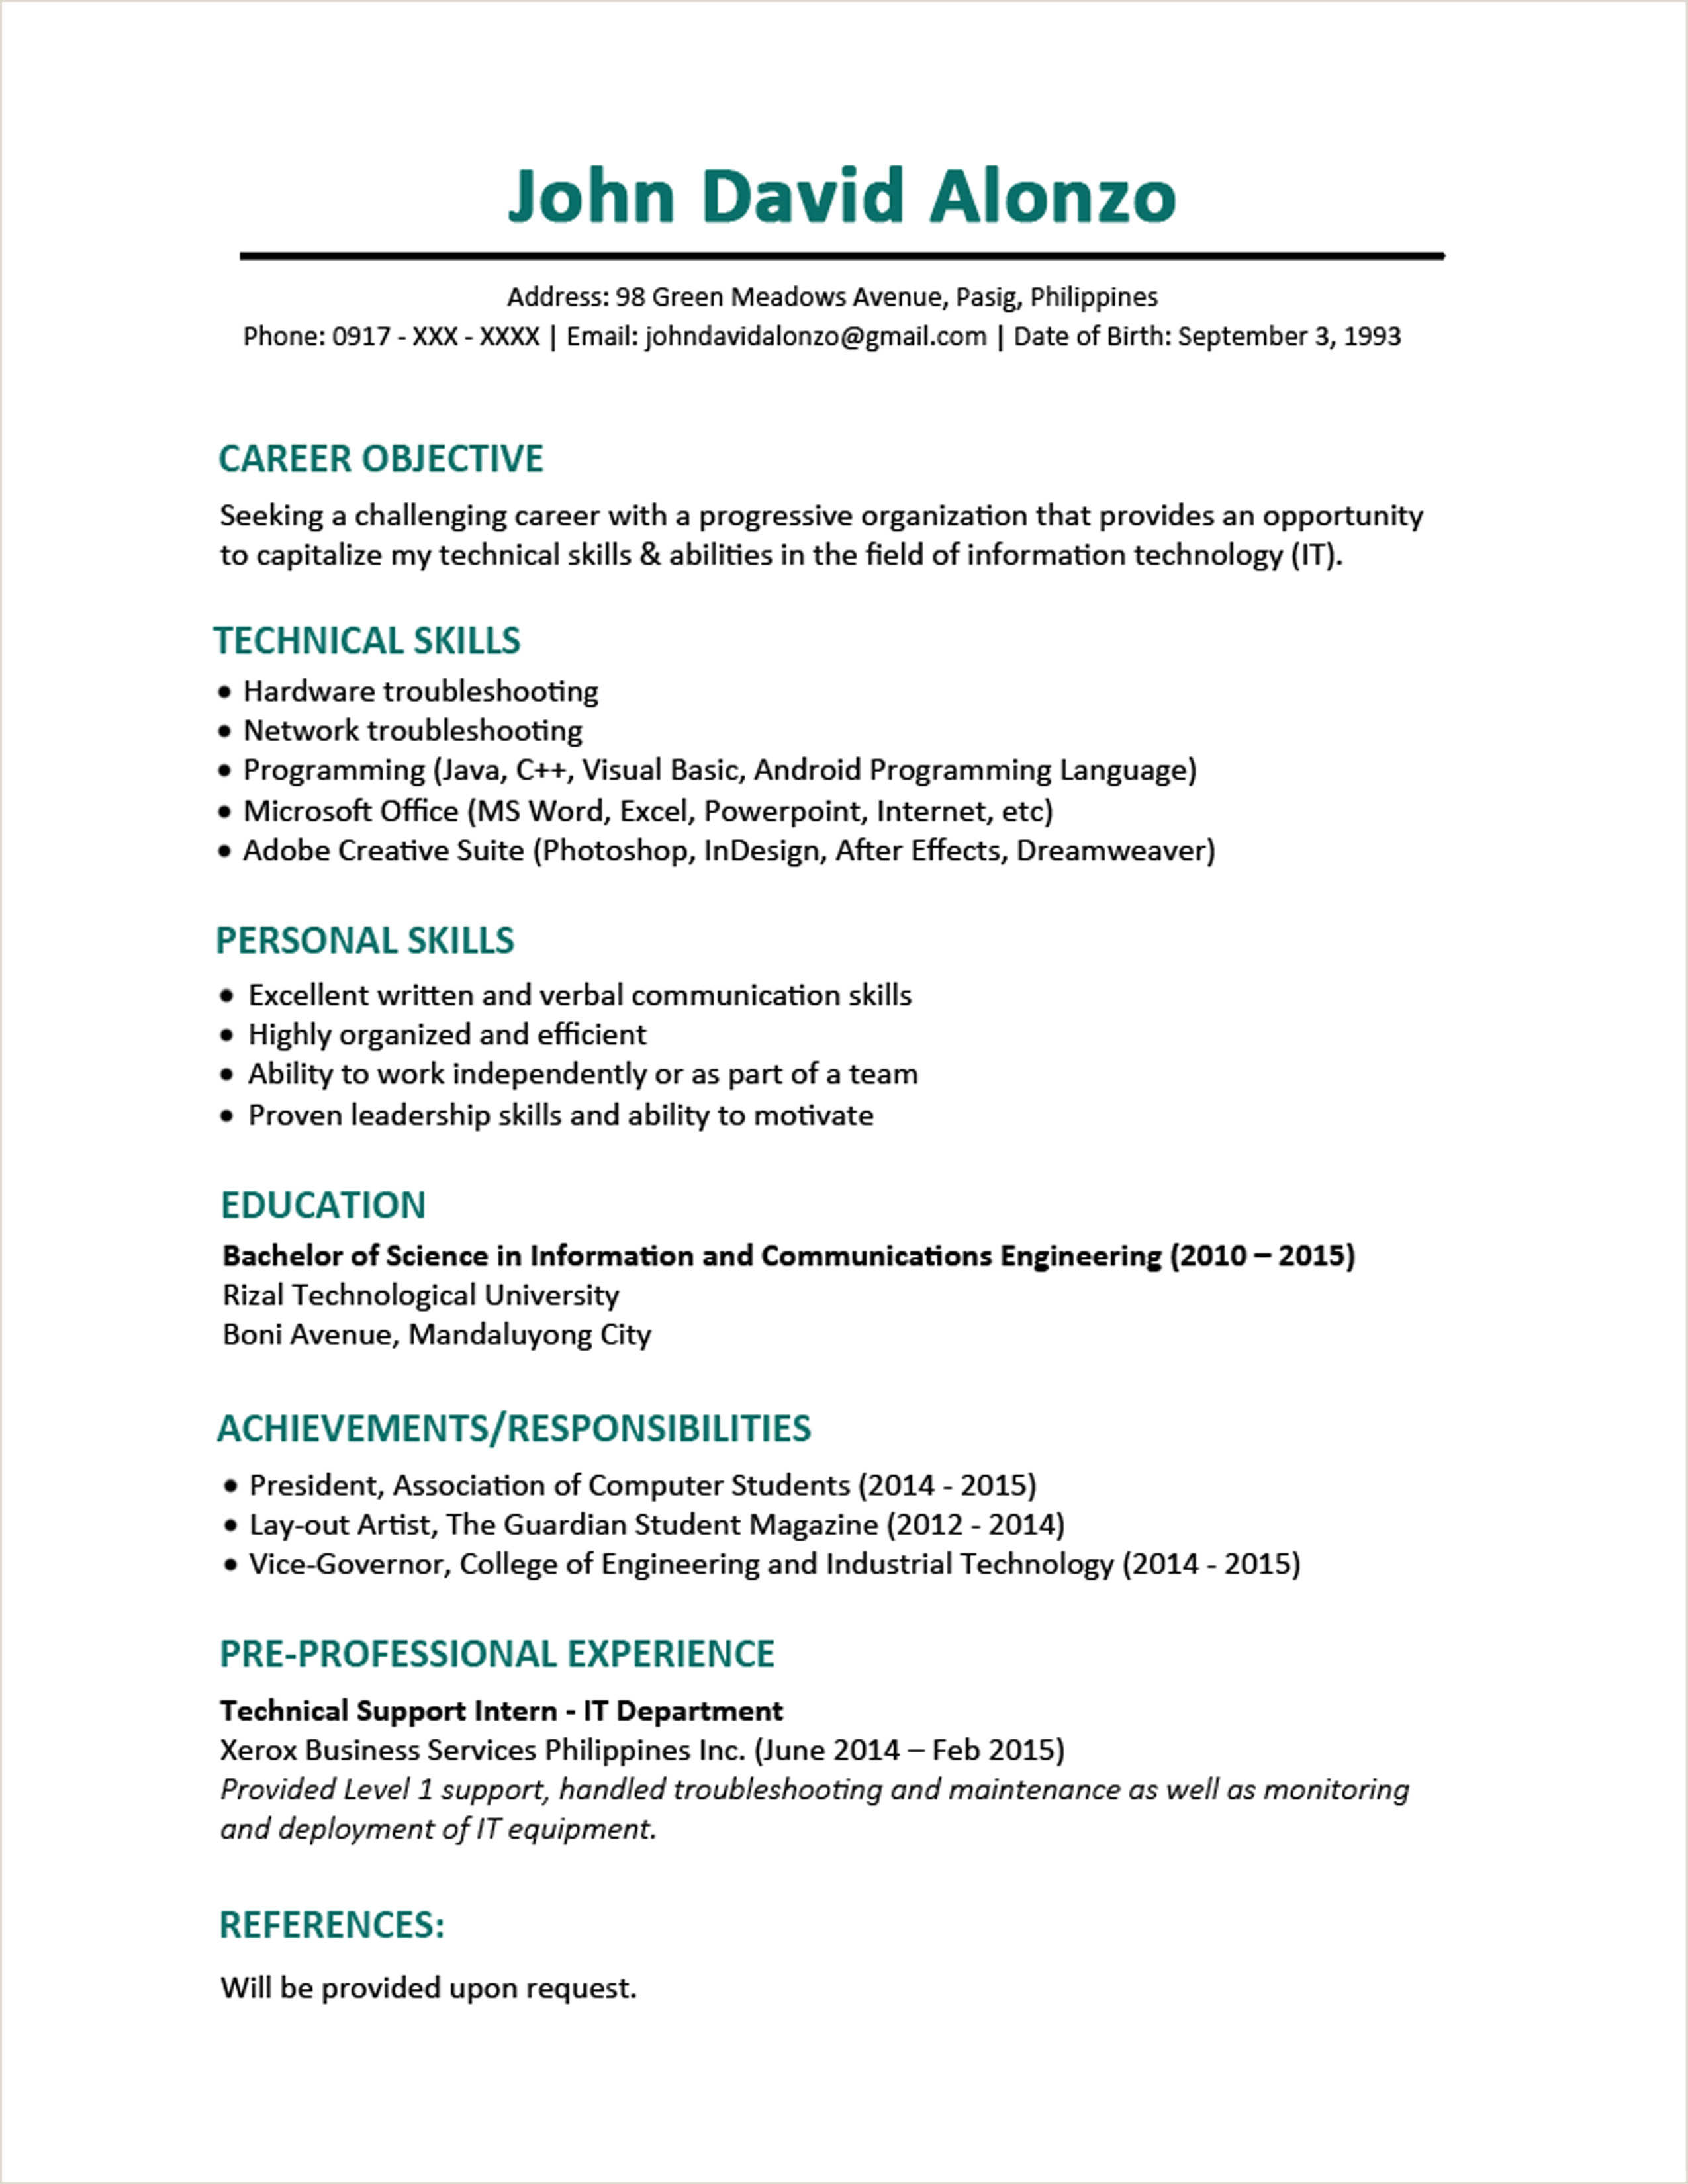 Fresher Resume Format Ba 3 Page Resume Format For Freshers Resume Templates